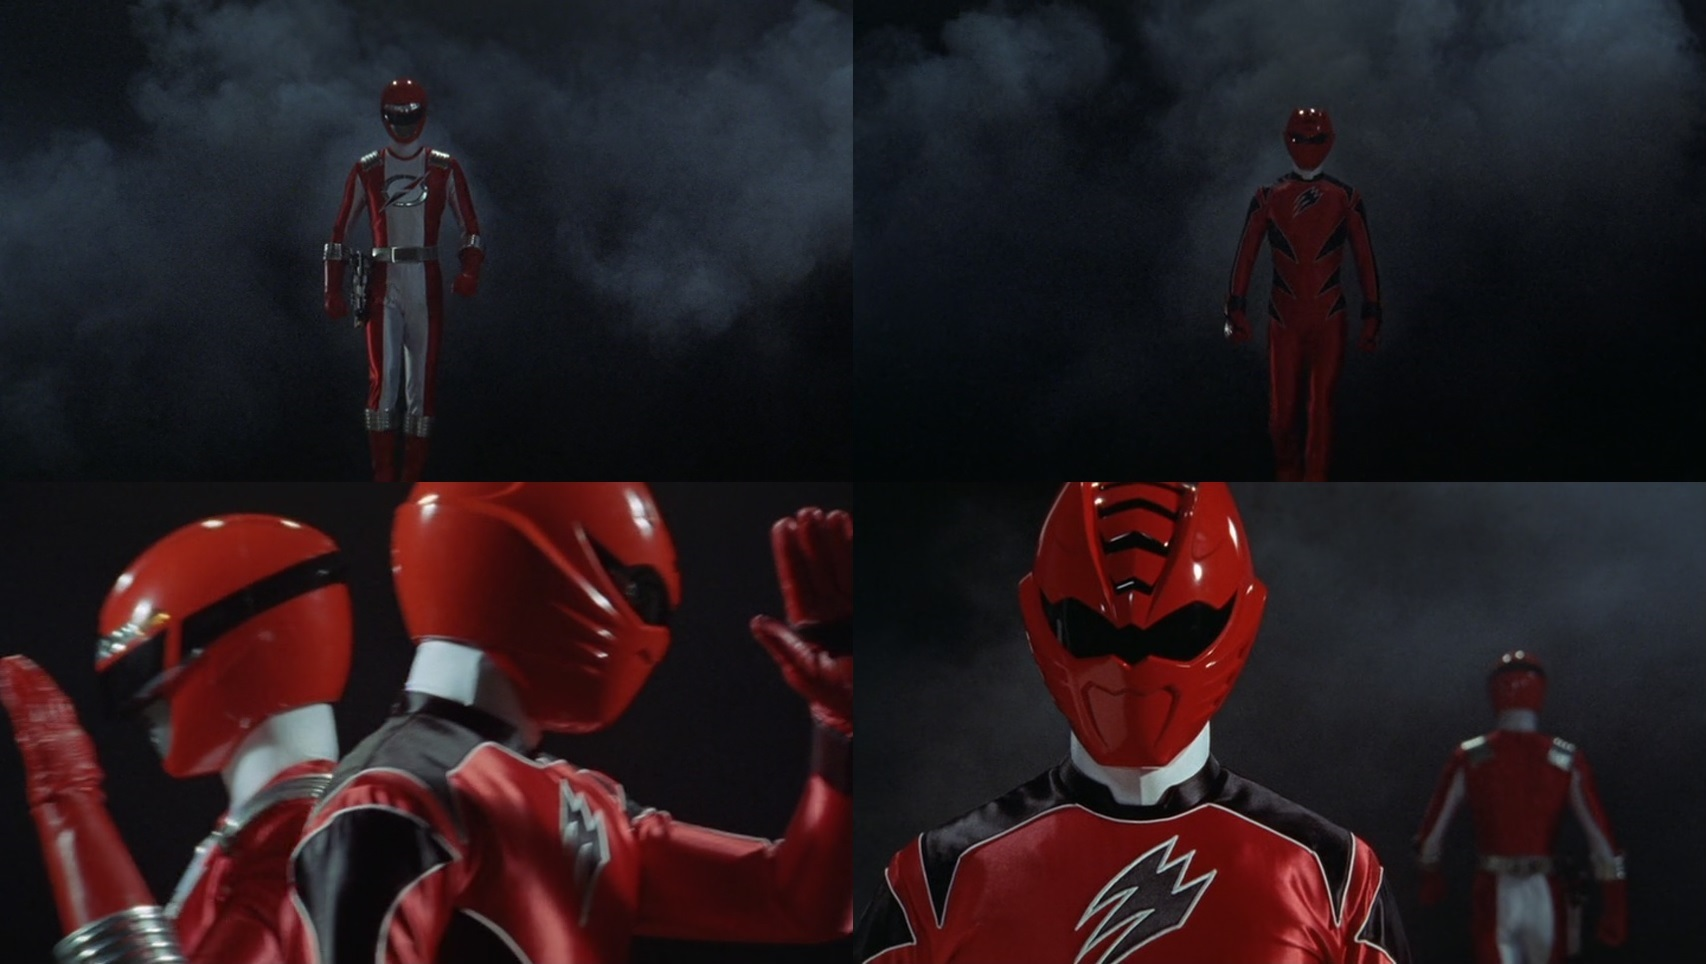 Rumbling Squadron Boukenger: The Super Sentai And Power Rangers